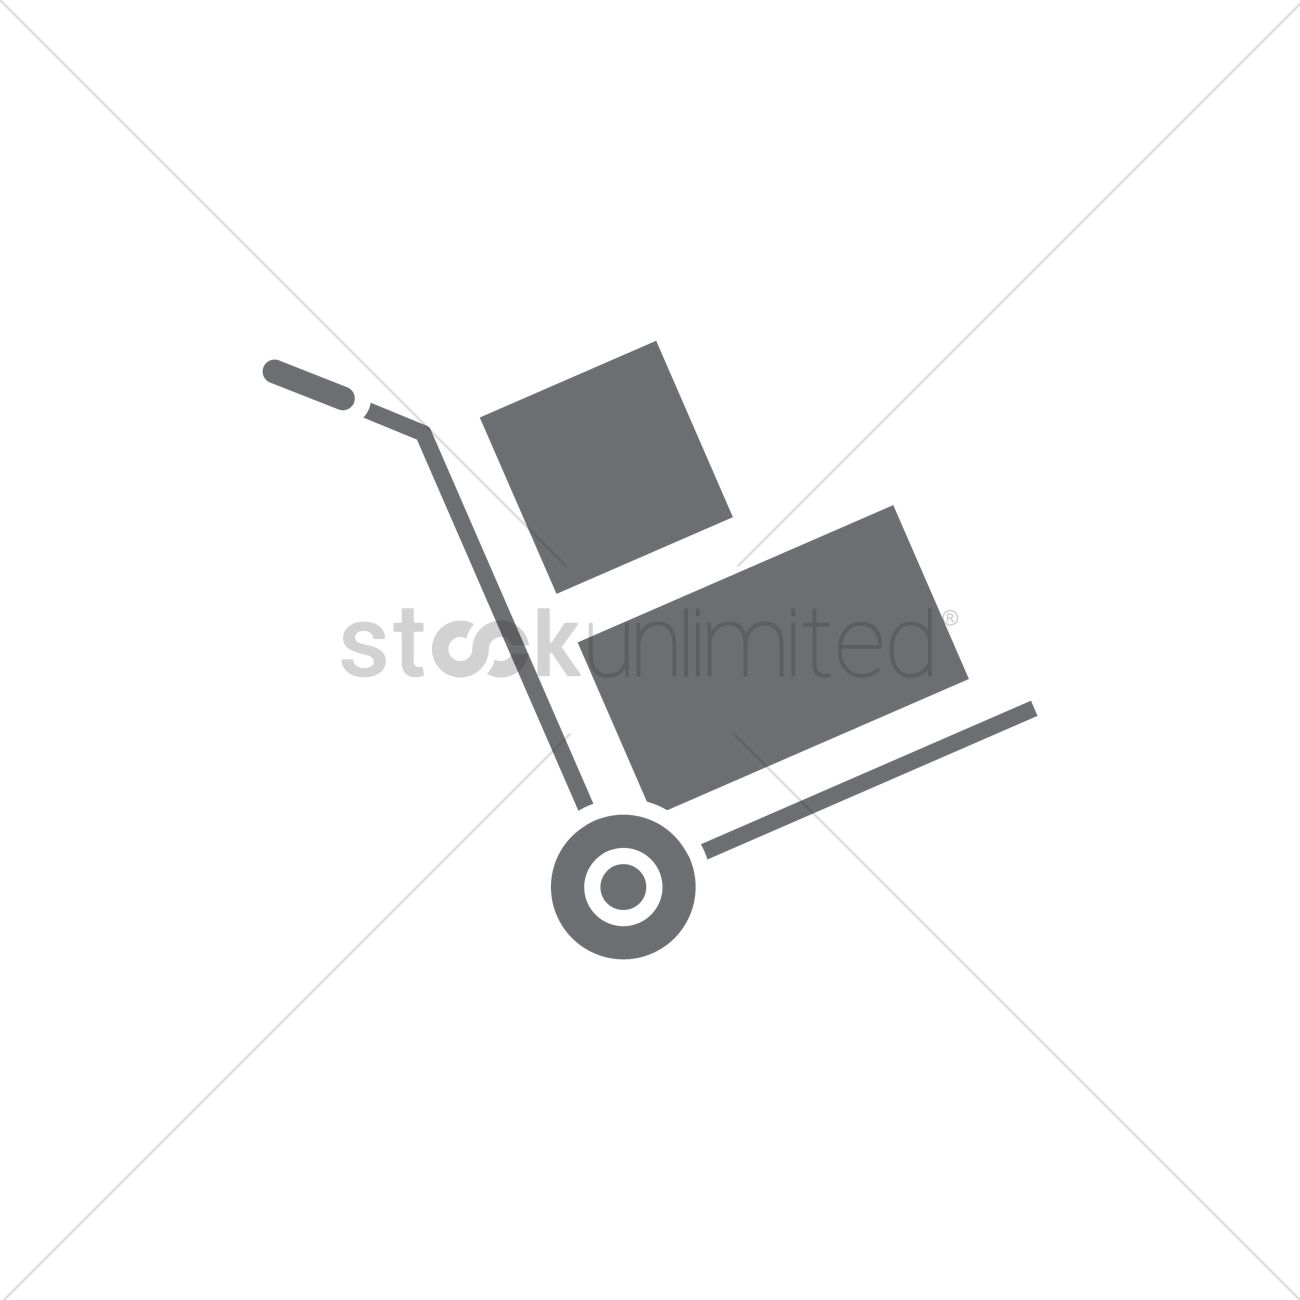 Hand trolley with boxes Vector Image - 1983395 | StockUnlimited